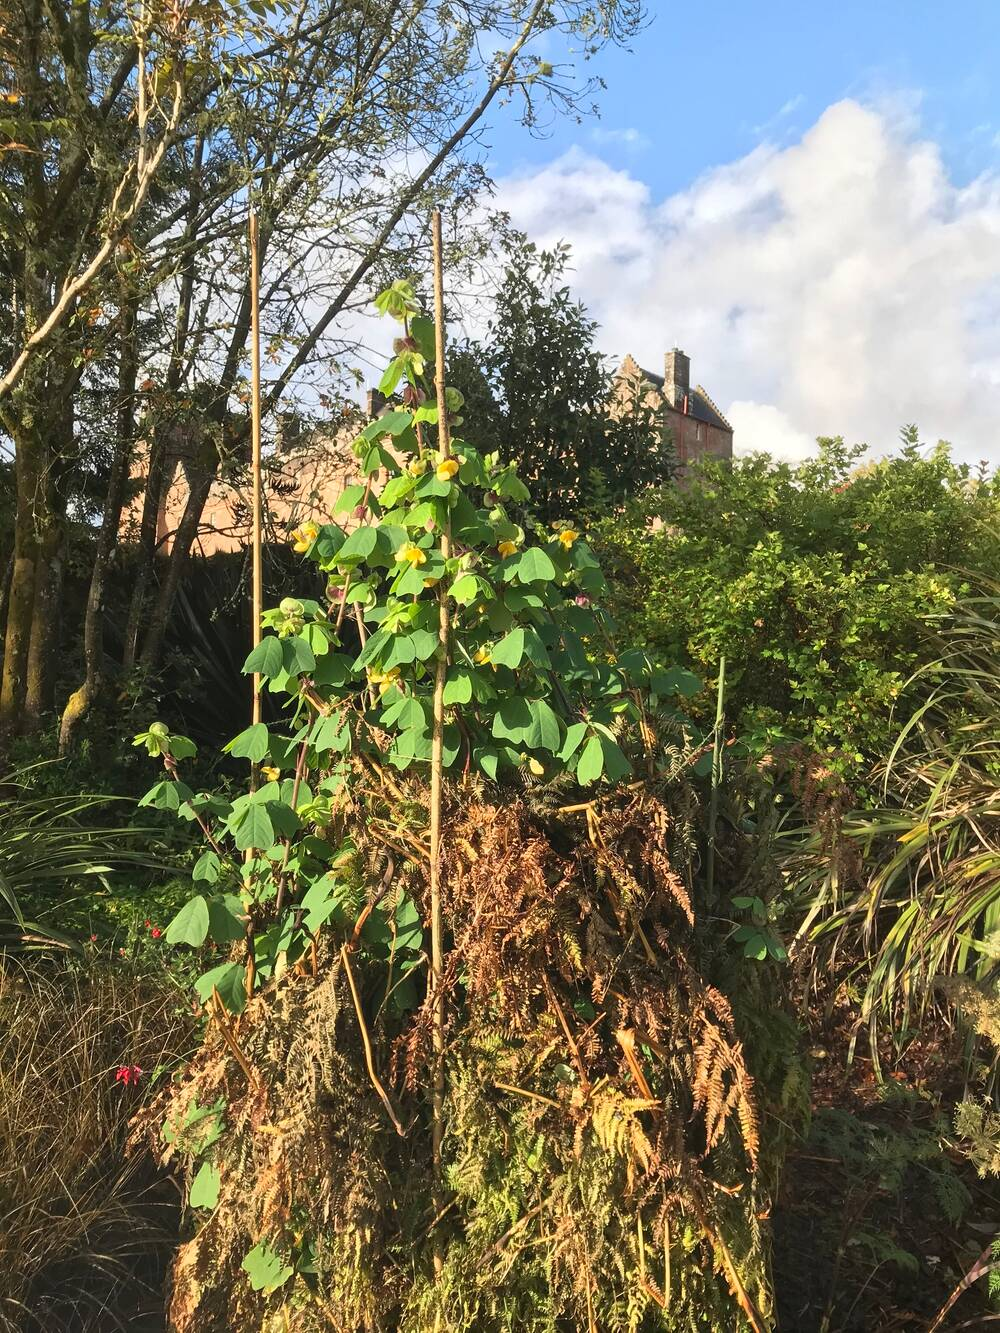 A fairly tall shrub, with bright green leaves and yellow flowers, is shown being supported with canes in a flower bed. Around the base of the canes are piles of bracken and ferns. Brodick Castle can just be seen in the distance.